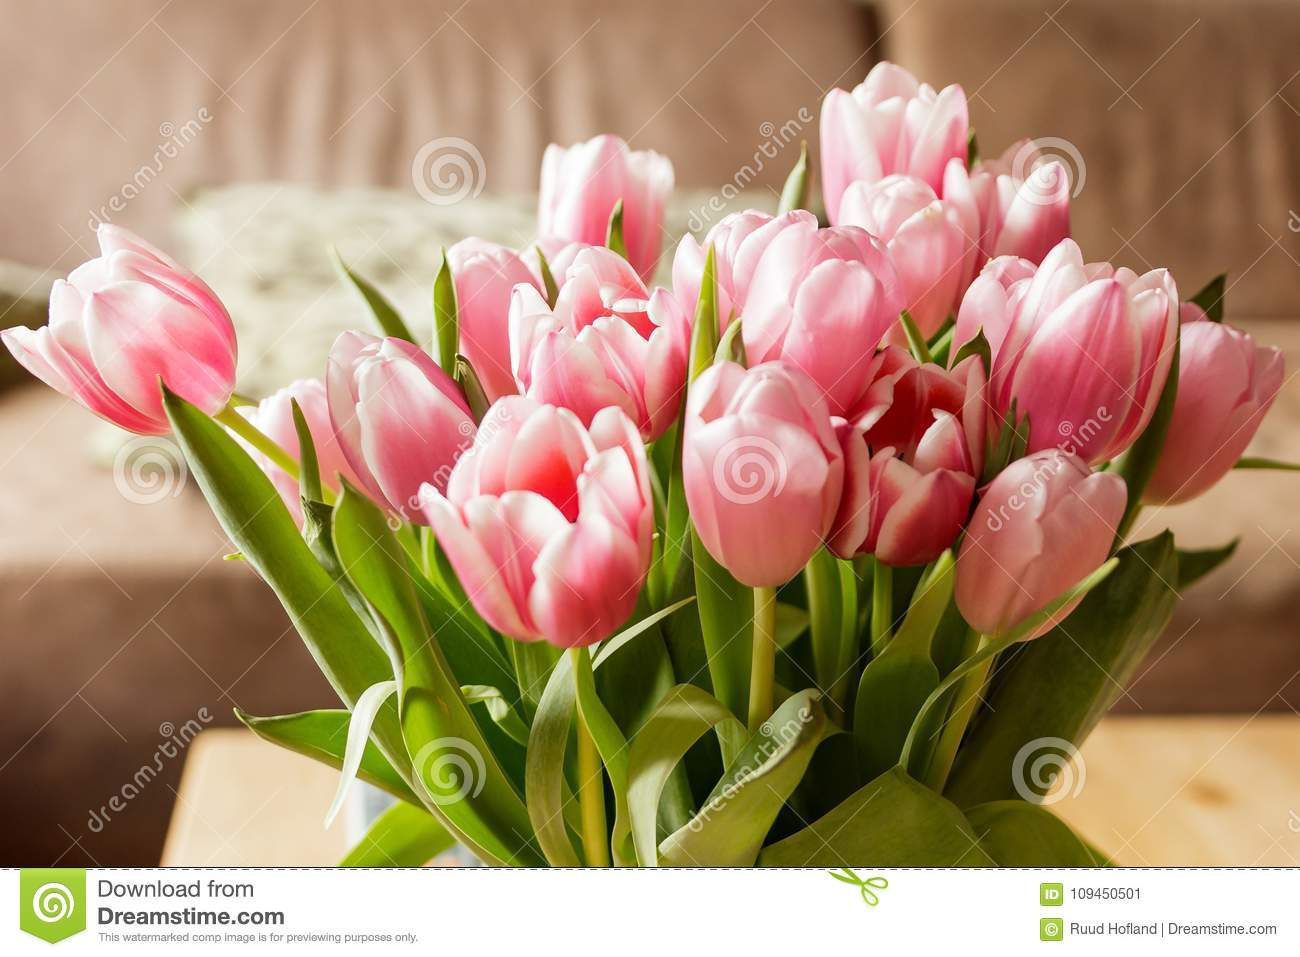 Tulips from holland valentine tulips stock image image of harz download comp m4hsunfo